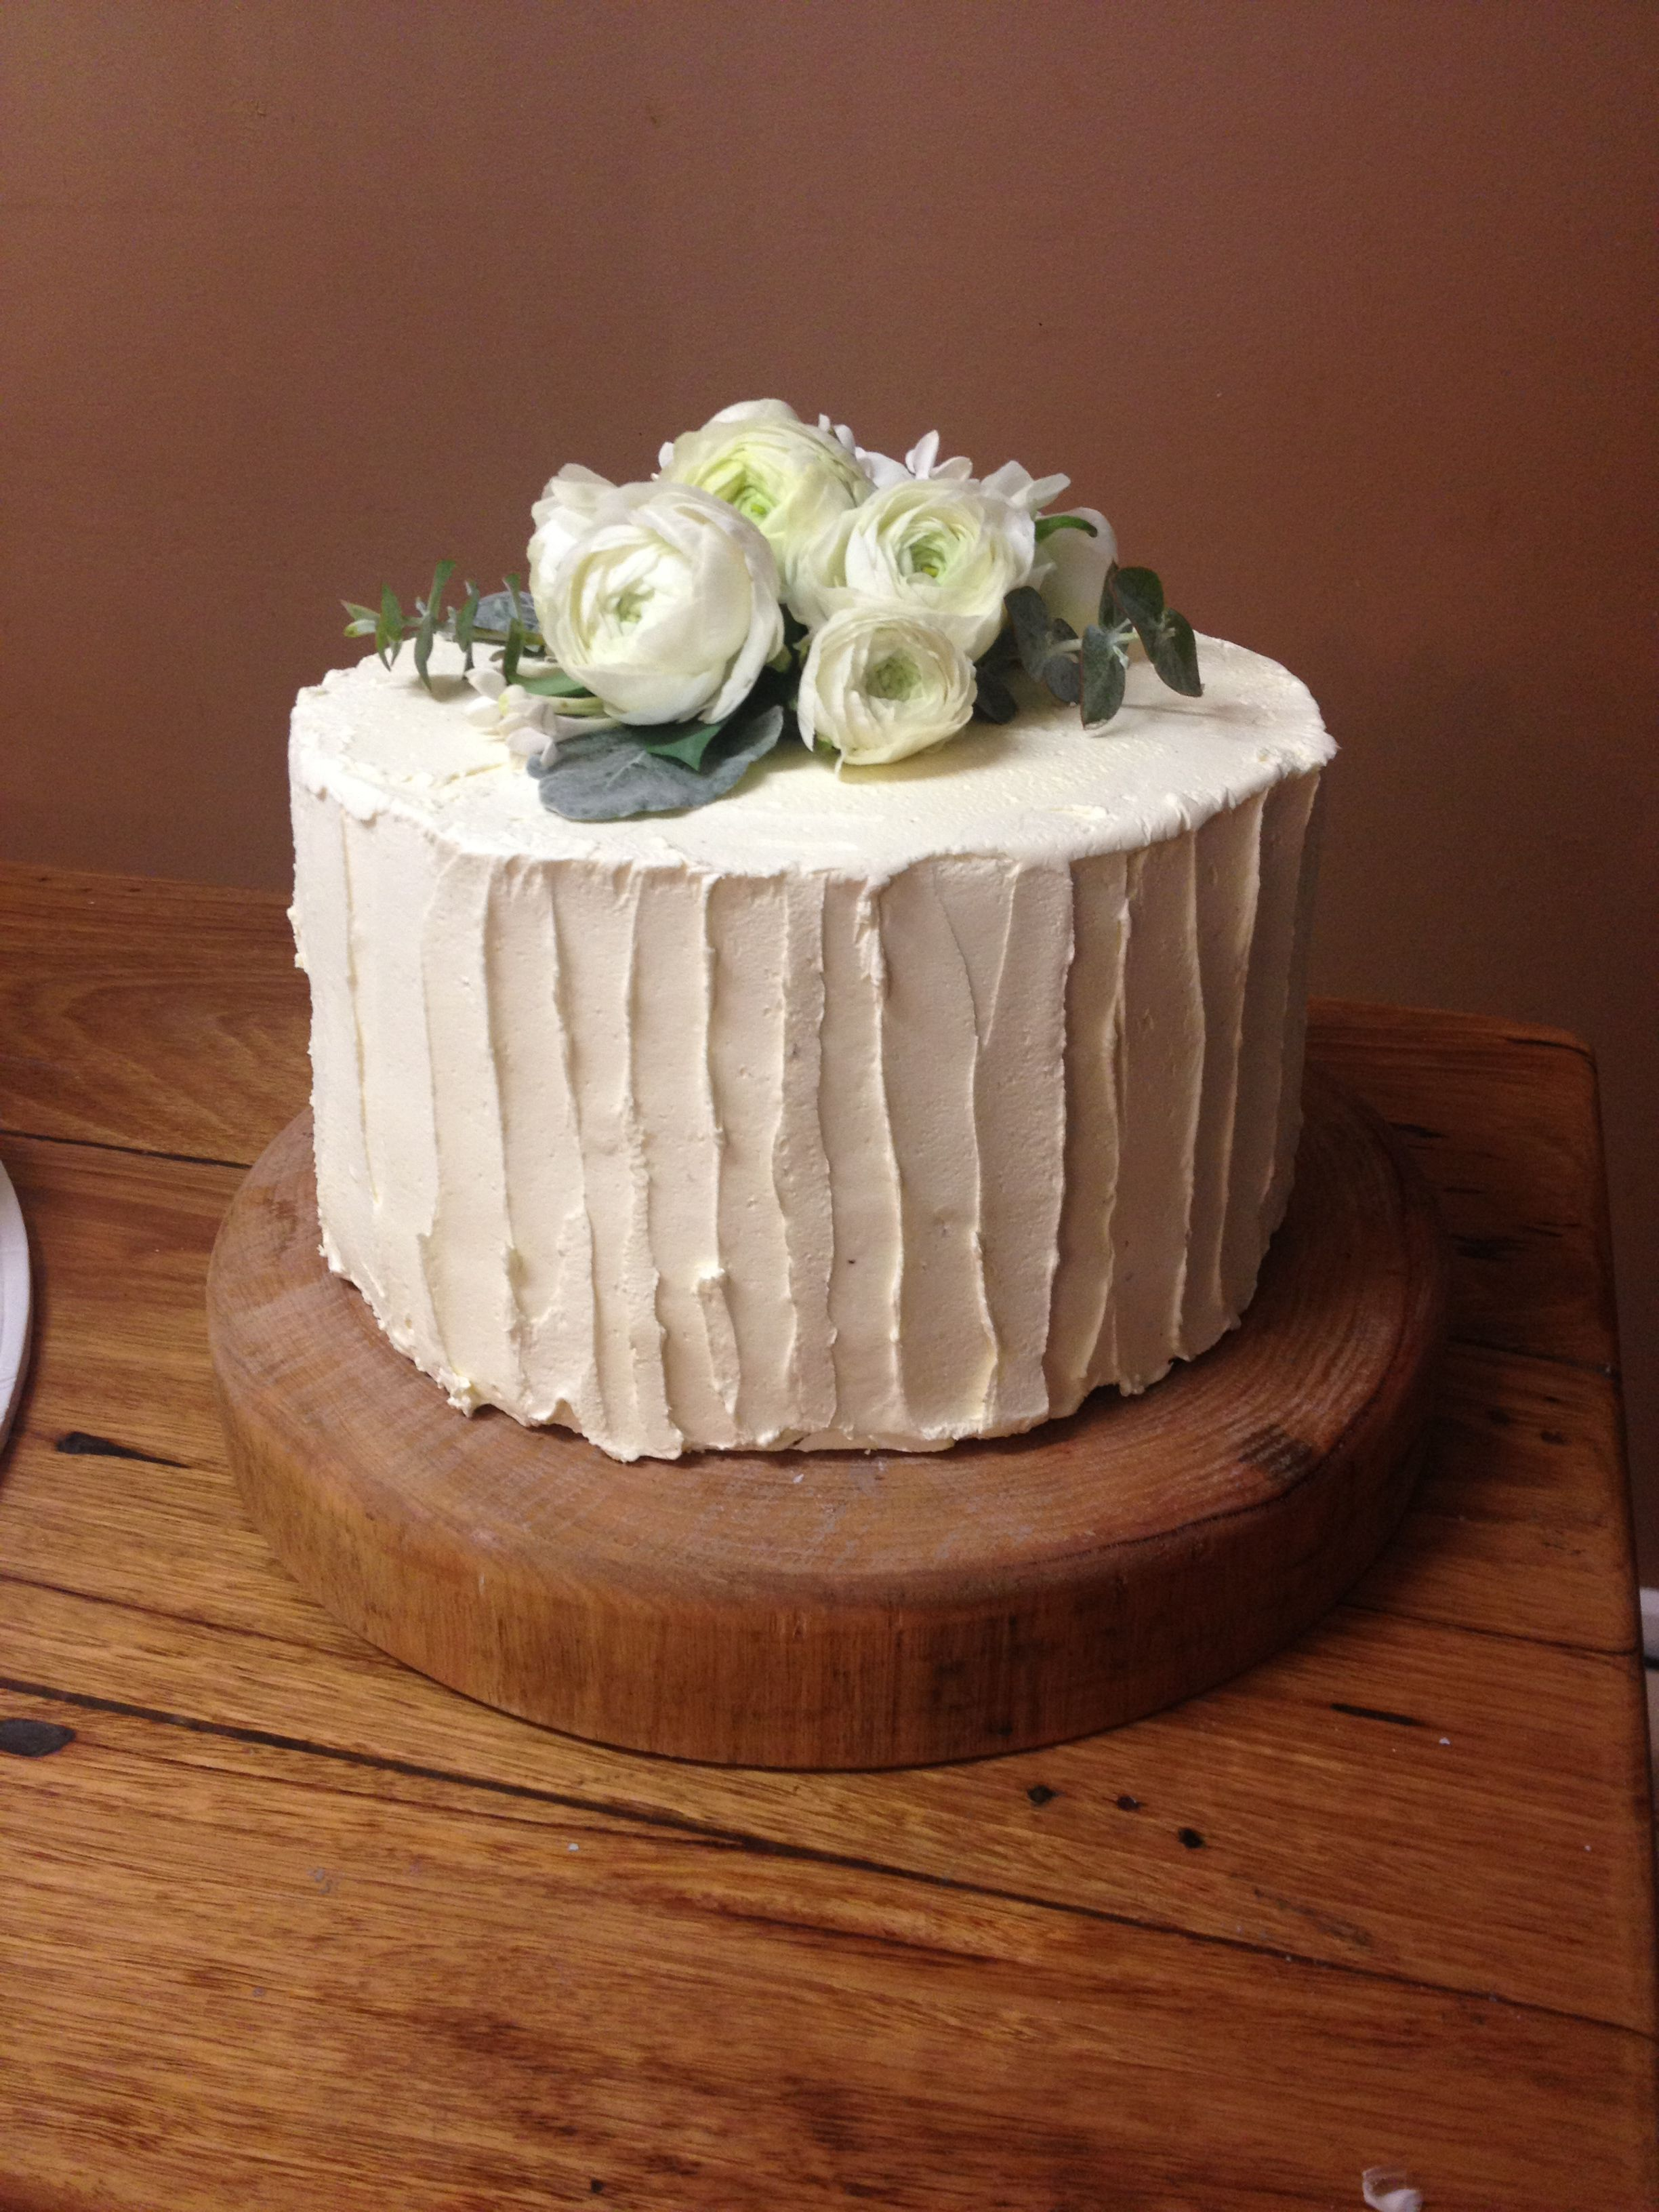 Rustic Red velvet double heights wedding cake frosted with